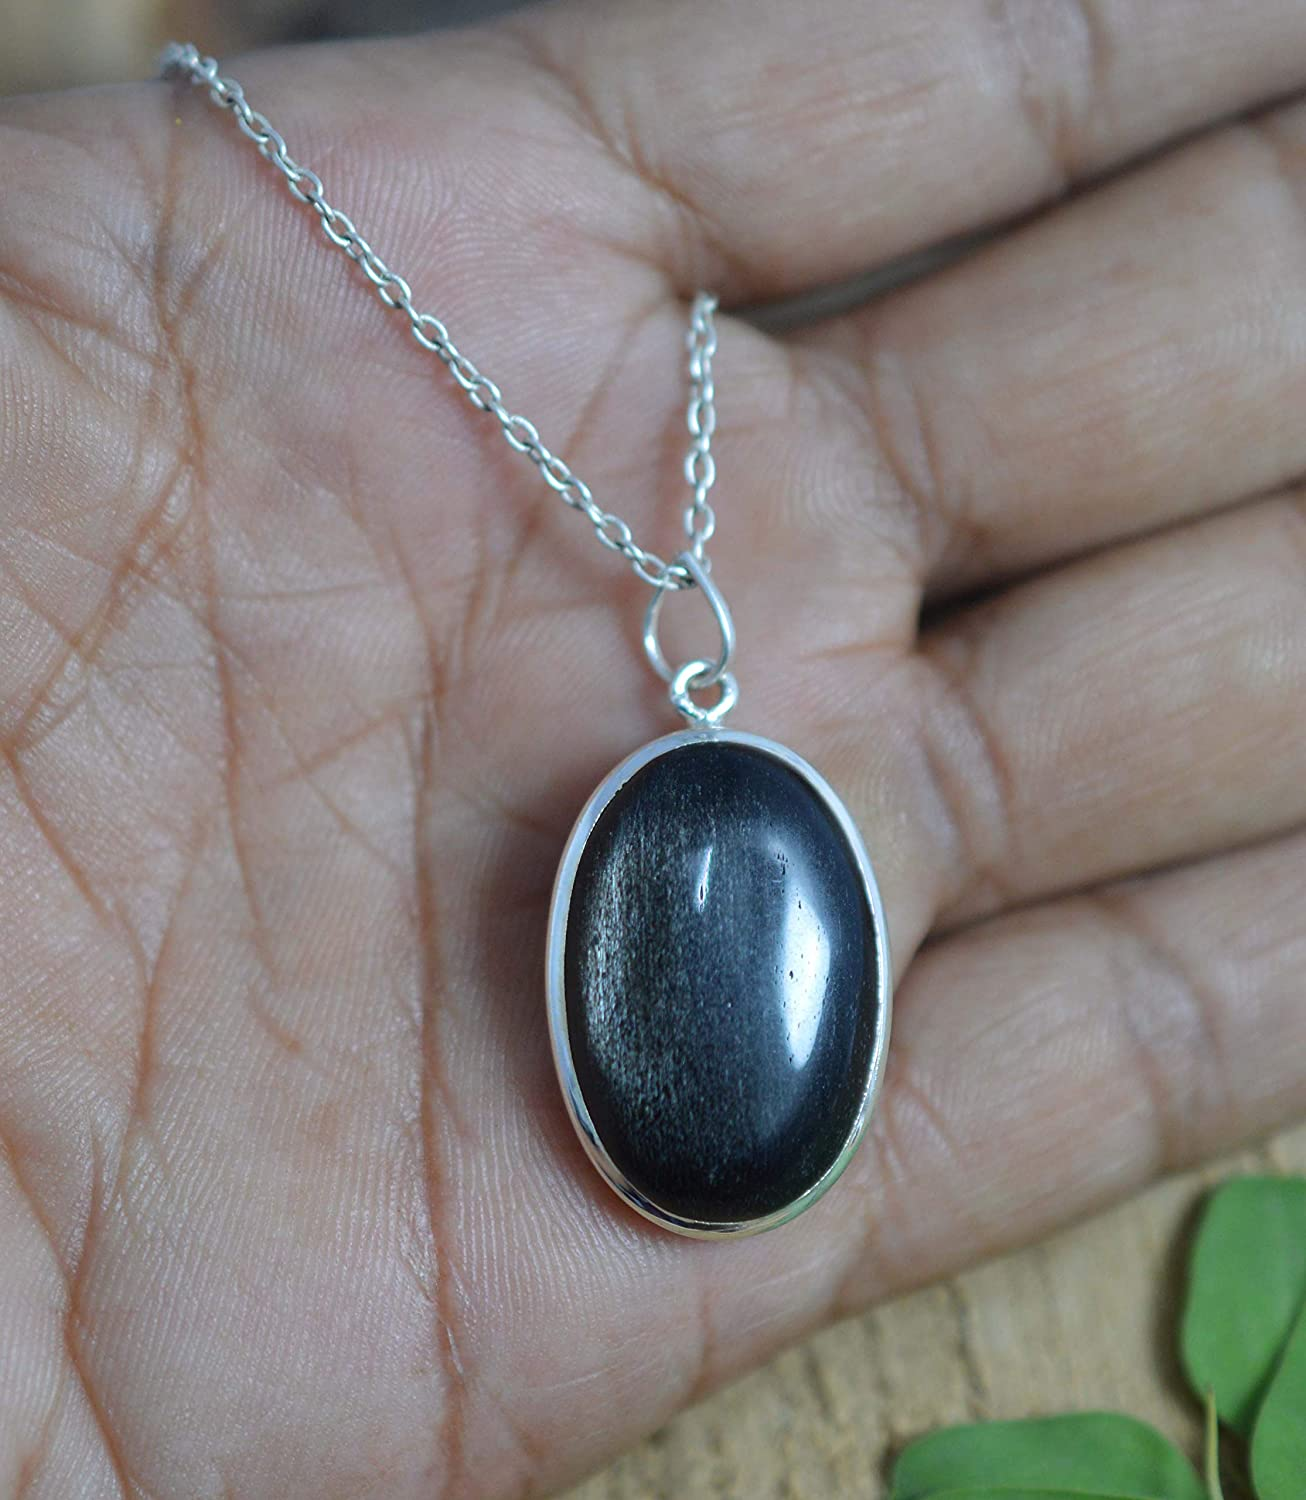 VICTORIANJEWELS 925 Solid Sterling Silver Black Onyx Chain Pendant 16.3 INCH